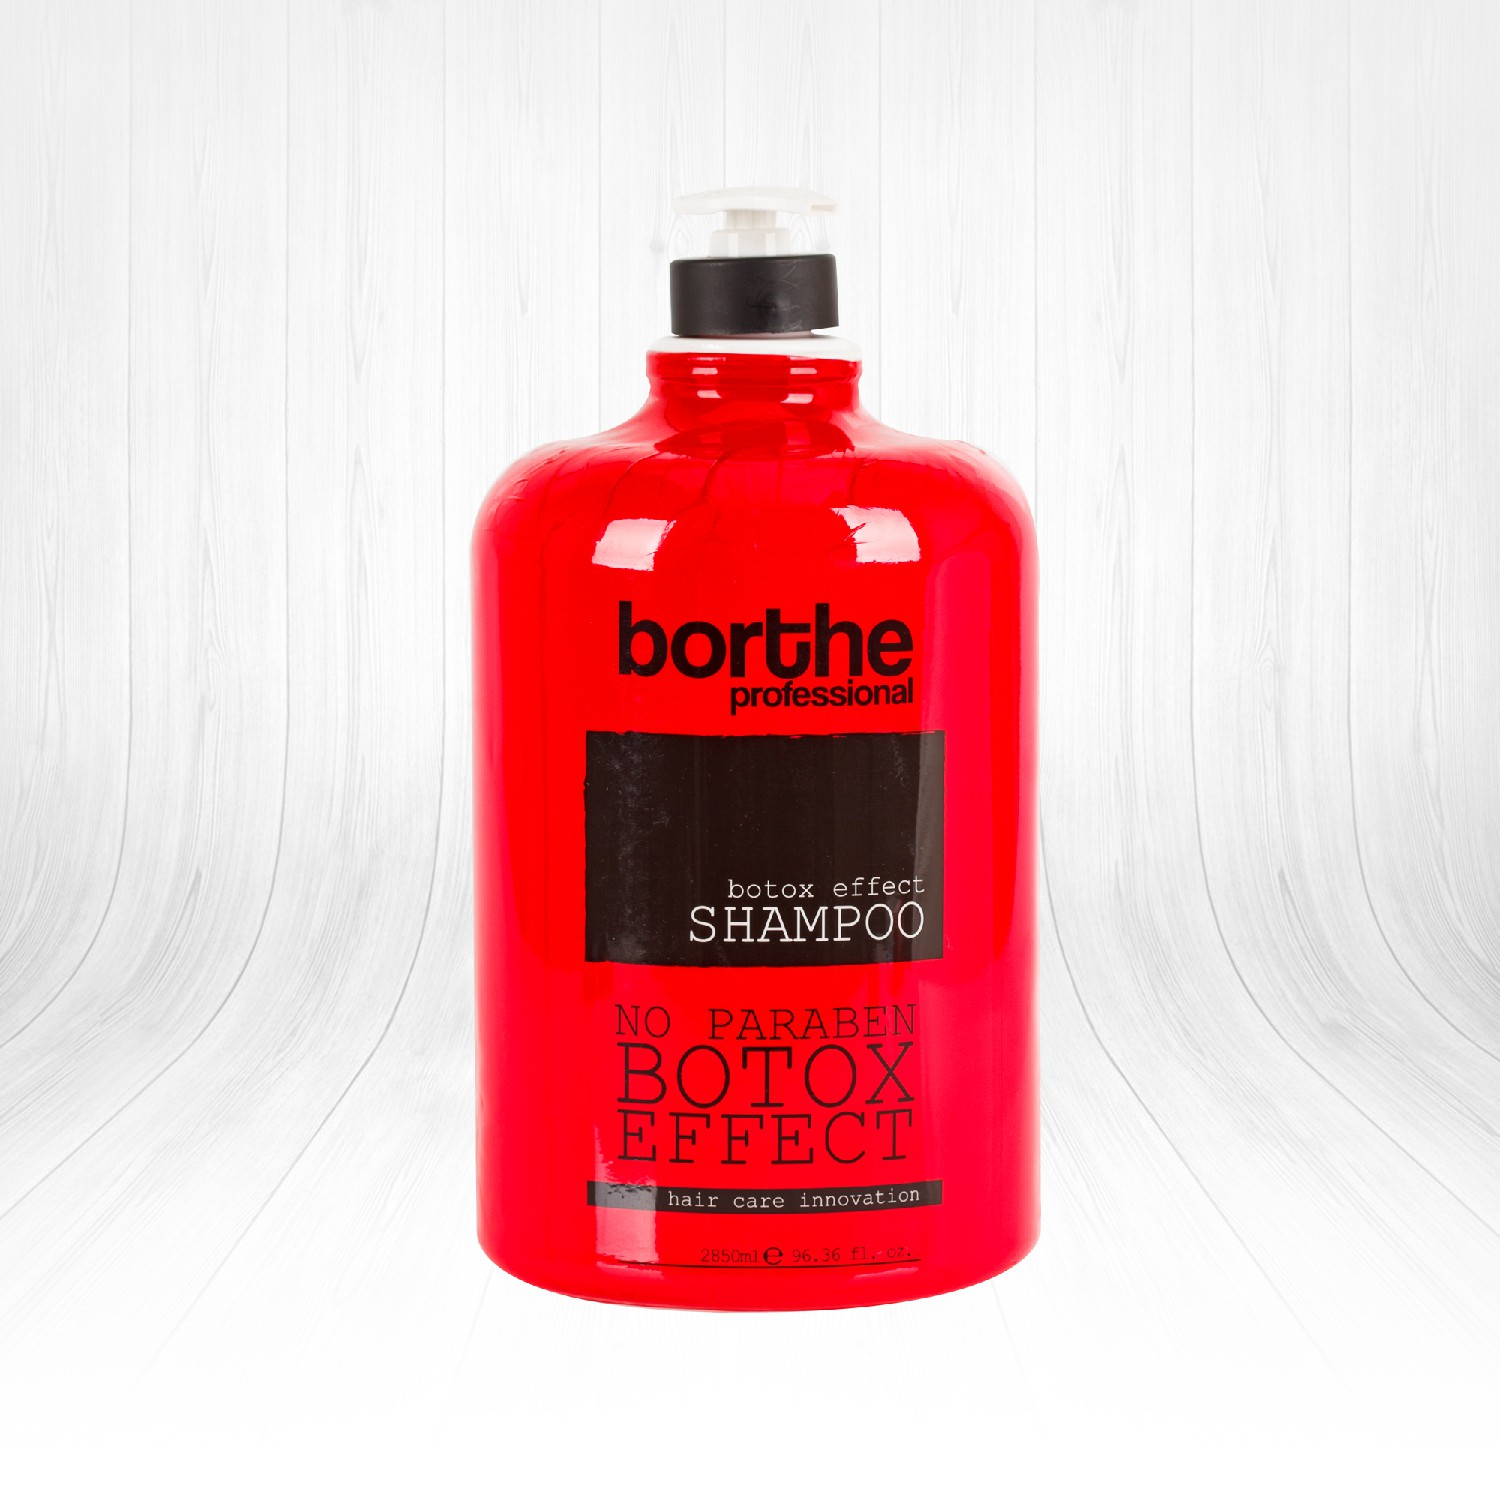 Borthe Professional Hair Care Botox Effect Shampoo